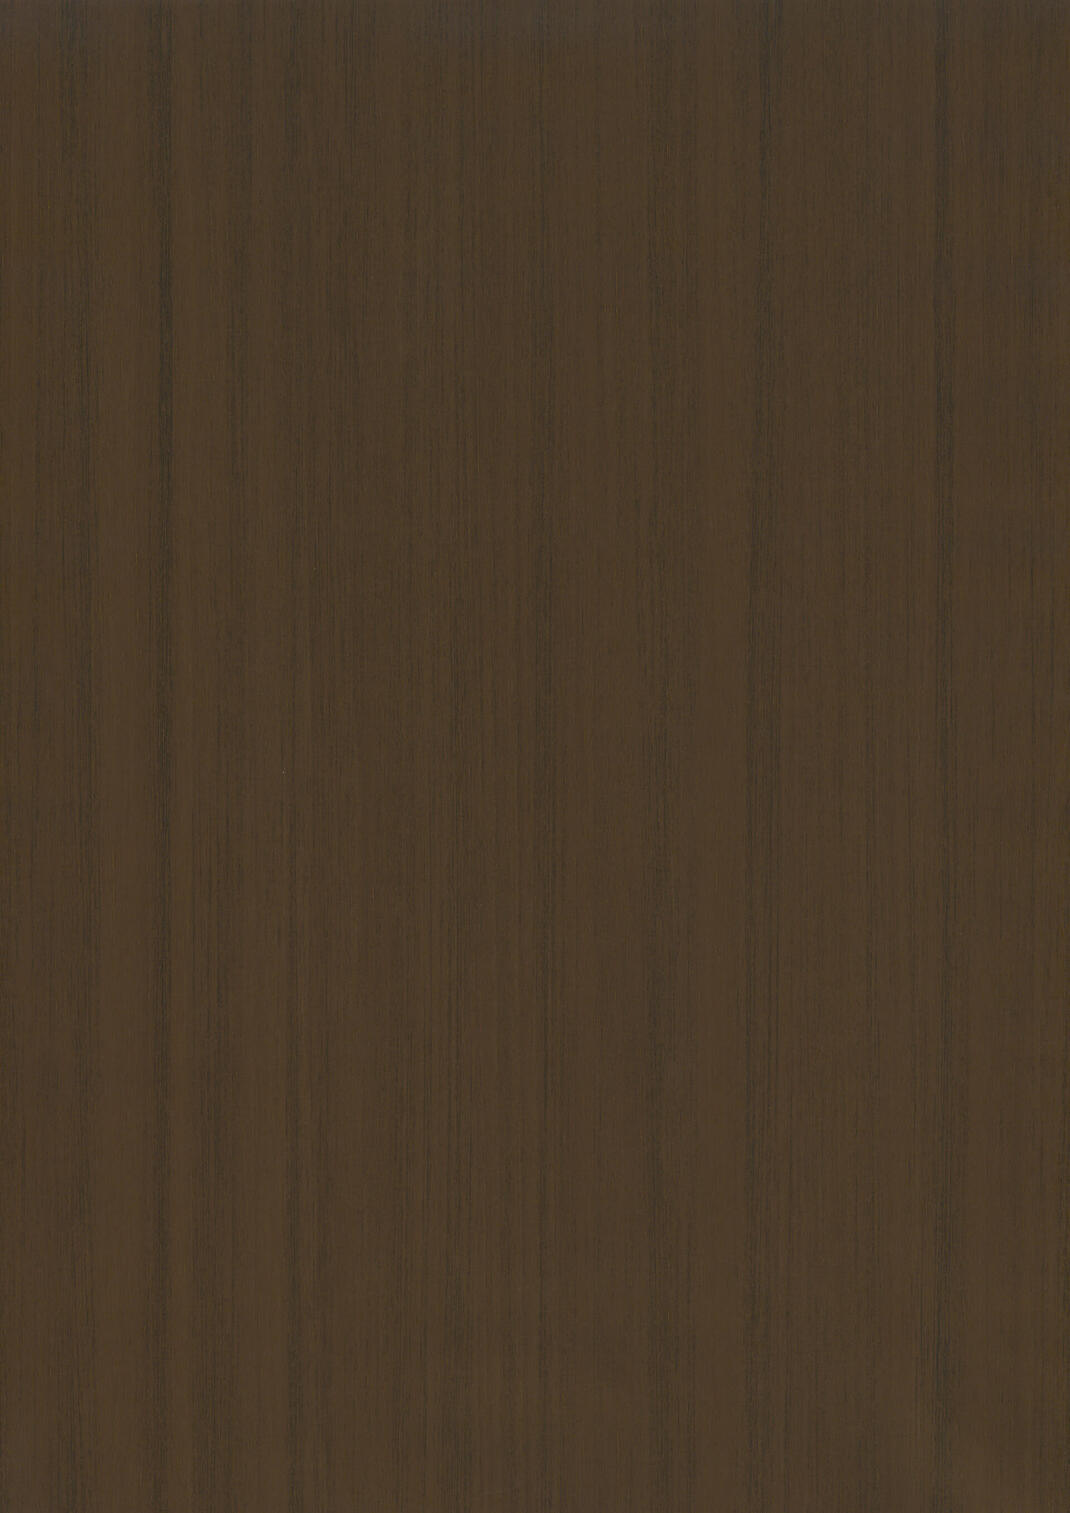 Walnut ANTIQUE DARK - 3 - фото